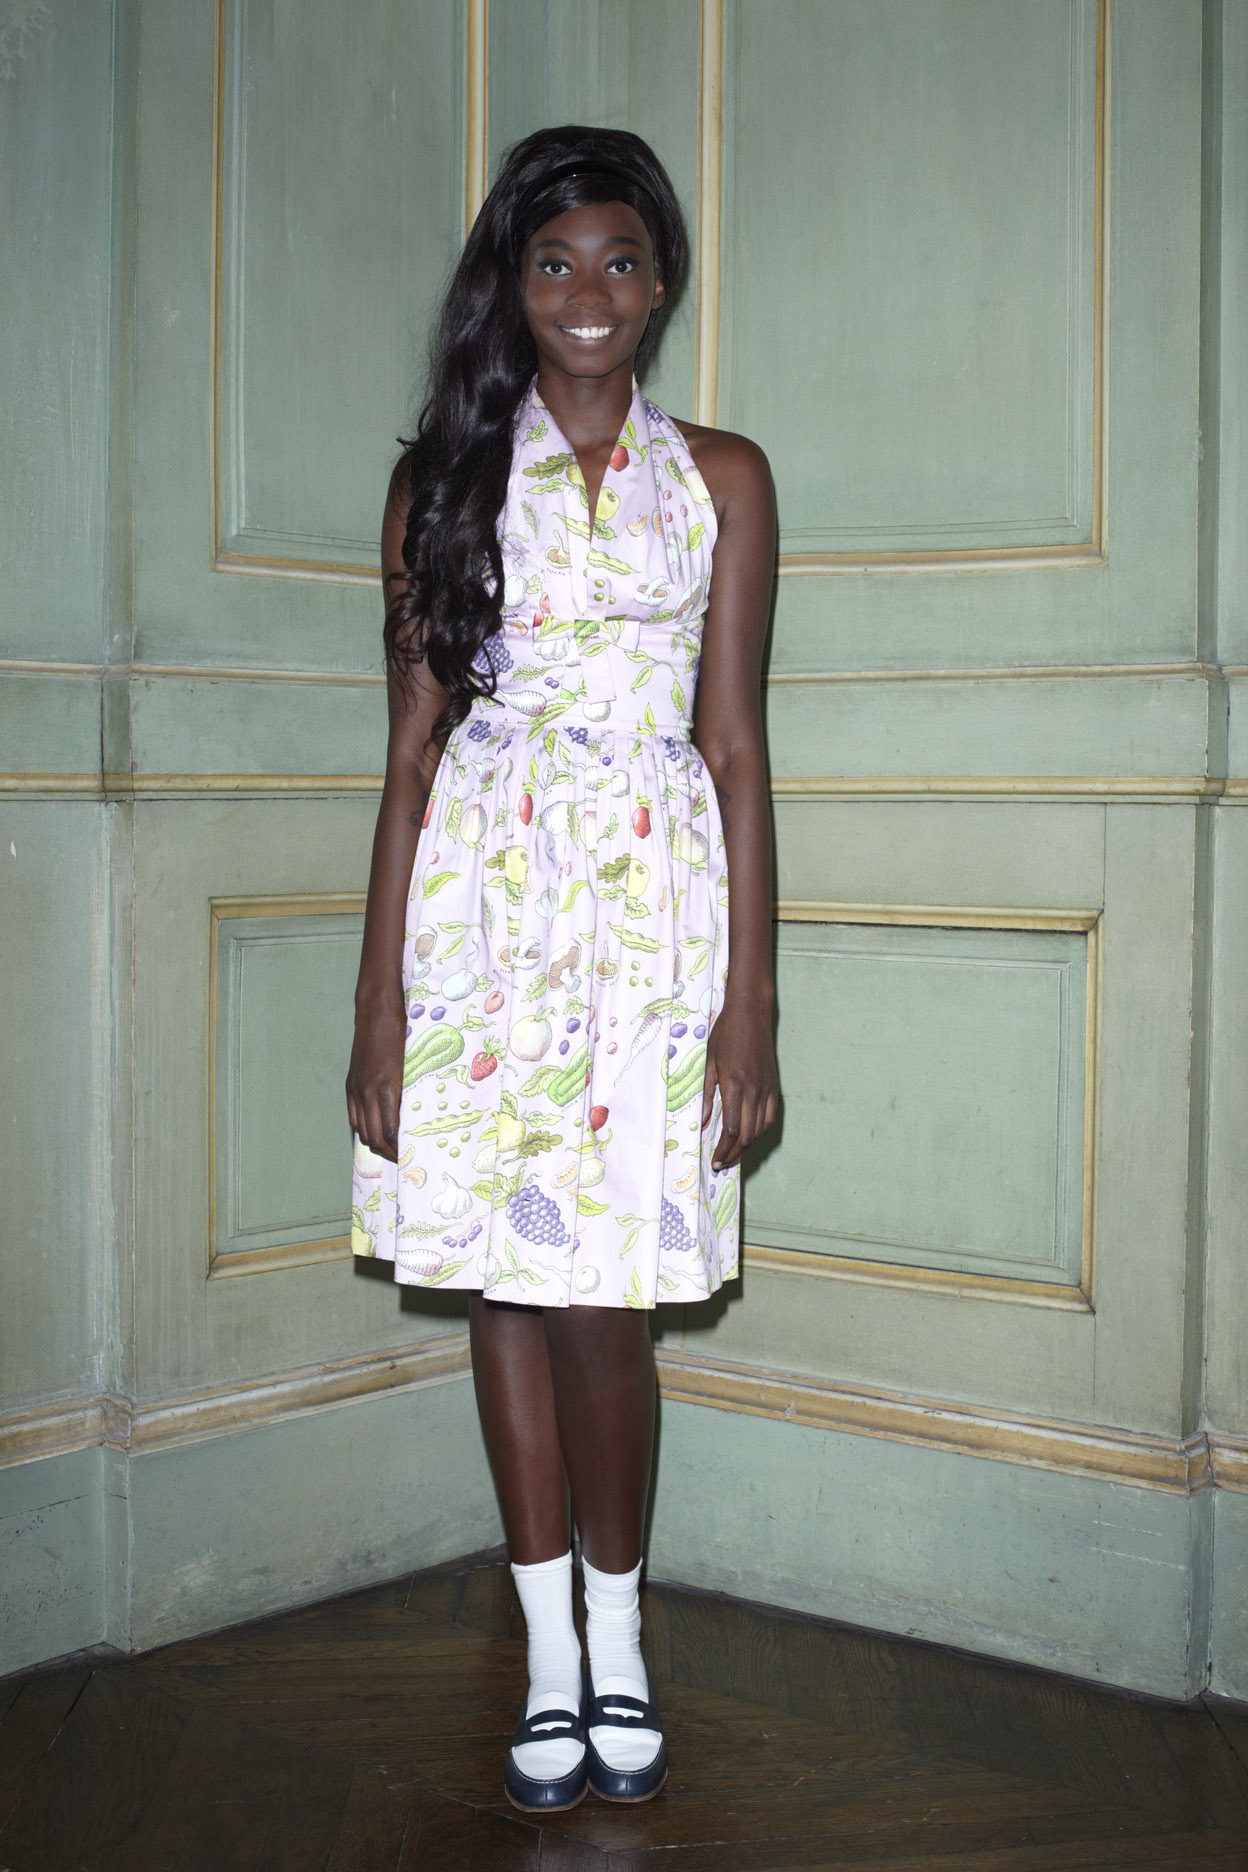 KhadyaK wearing the pink Secret Garden Diana dress.